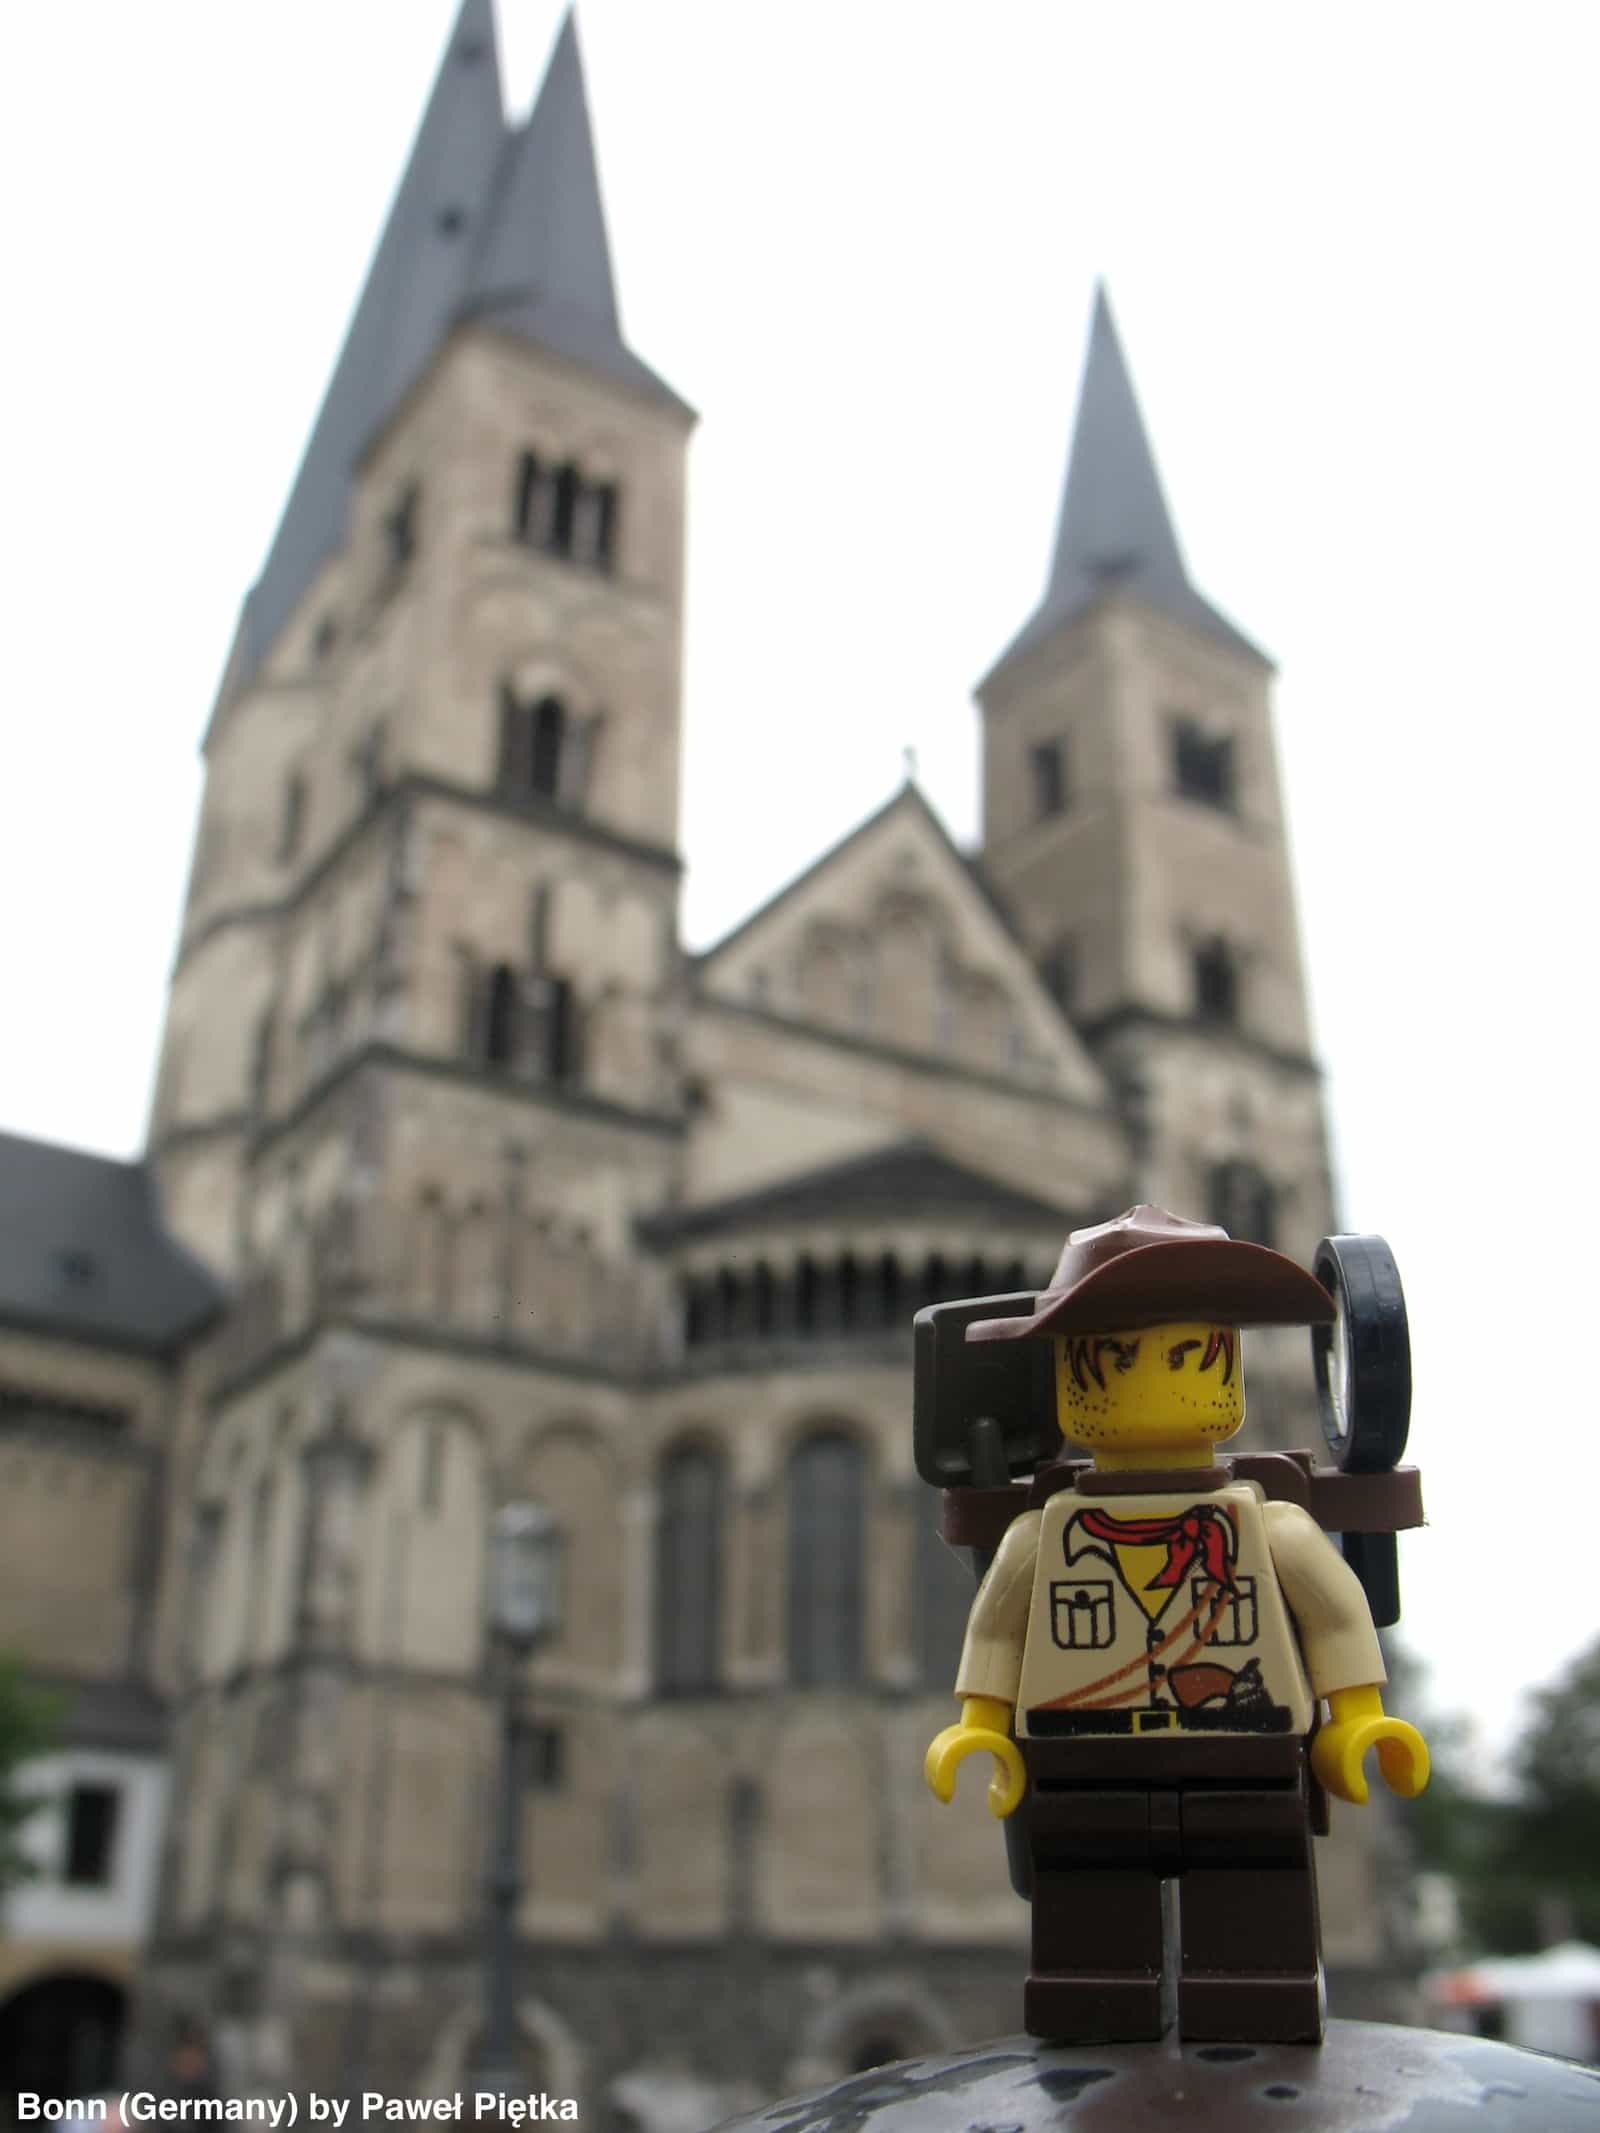 Bonn (Germany) - Bonn Minster